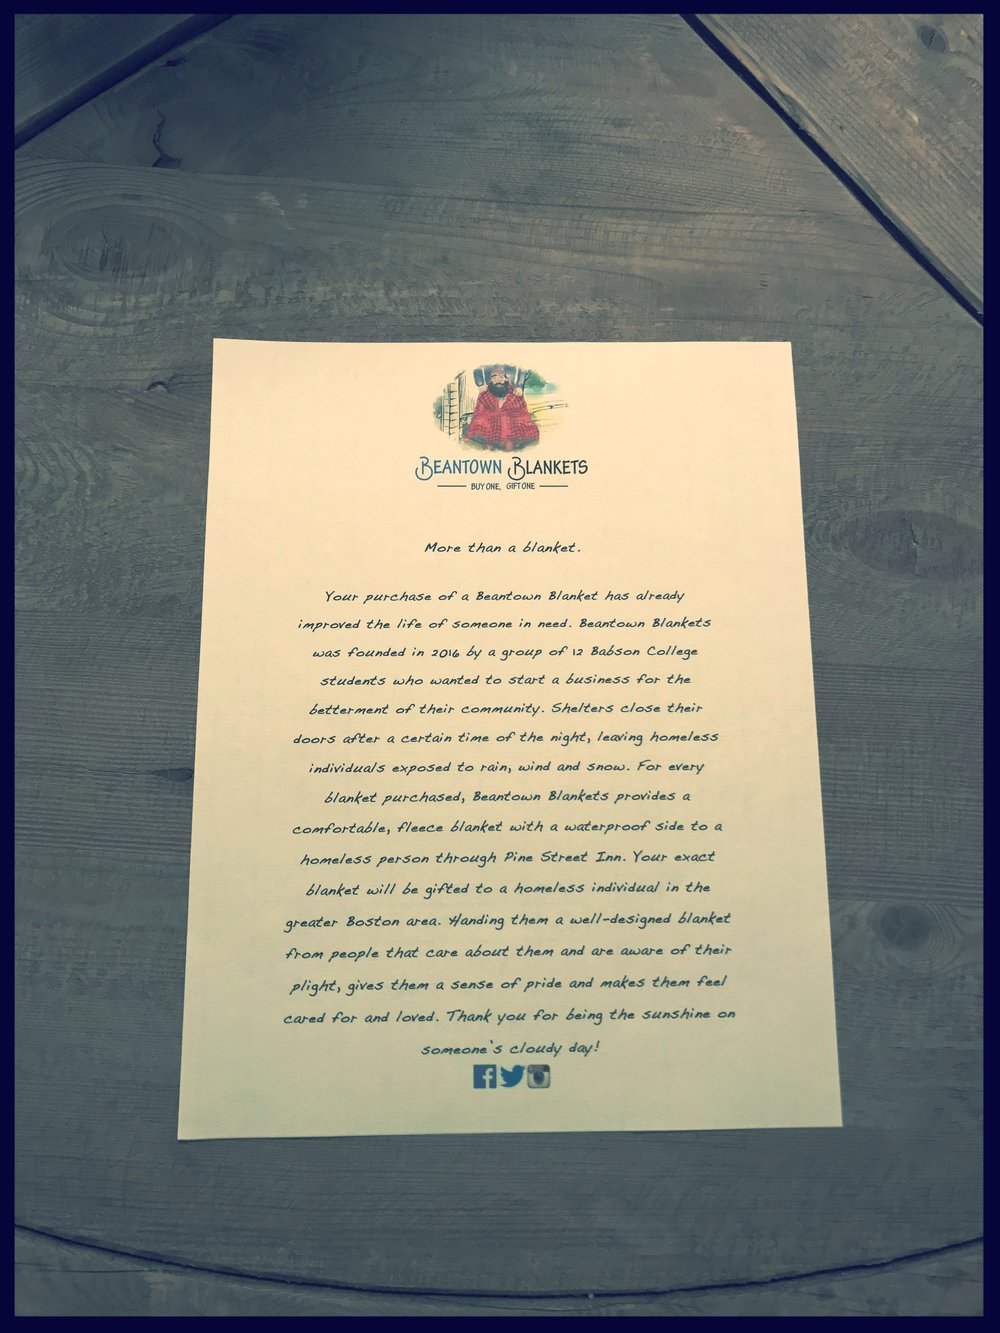 Each blanket is rolled with a letter inside. This letter explains the mission of Beantown Blankets.